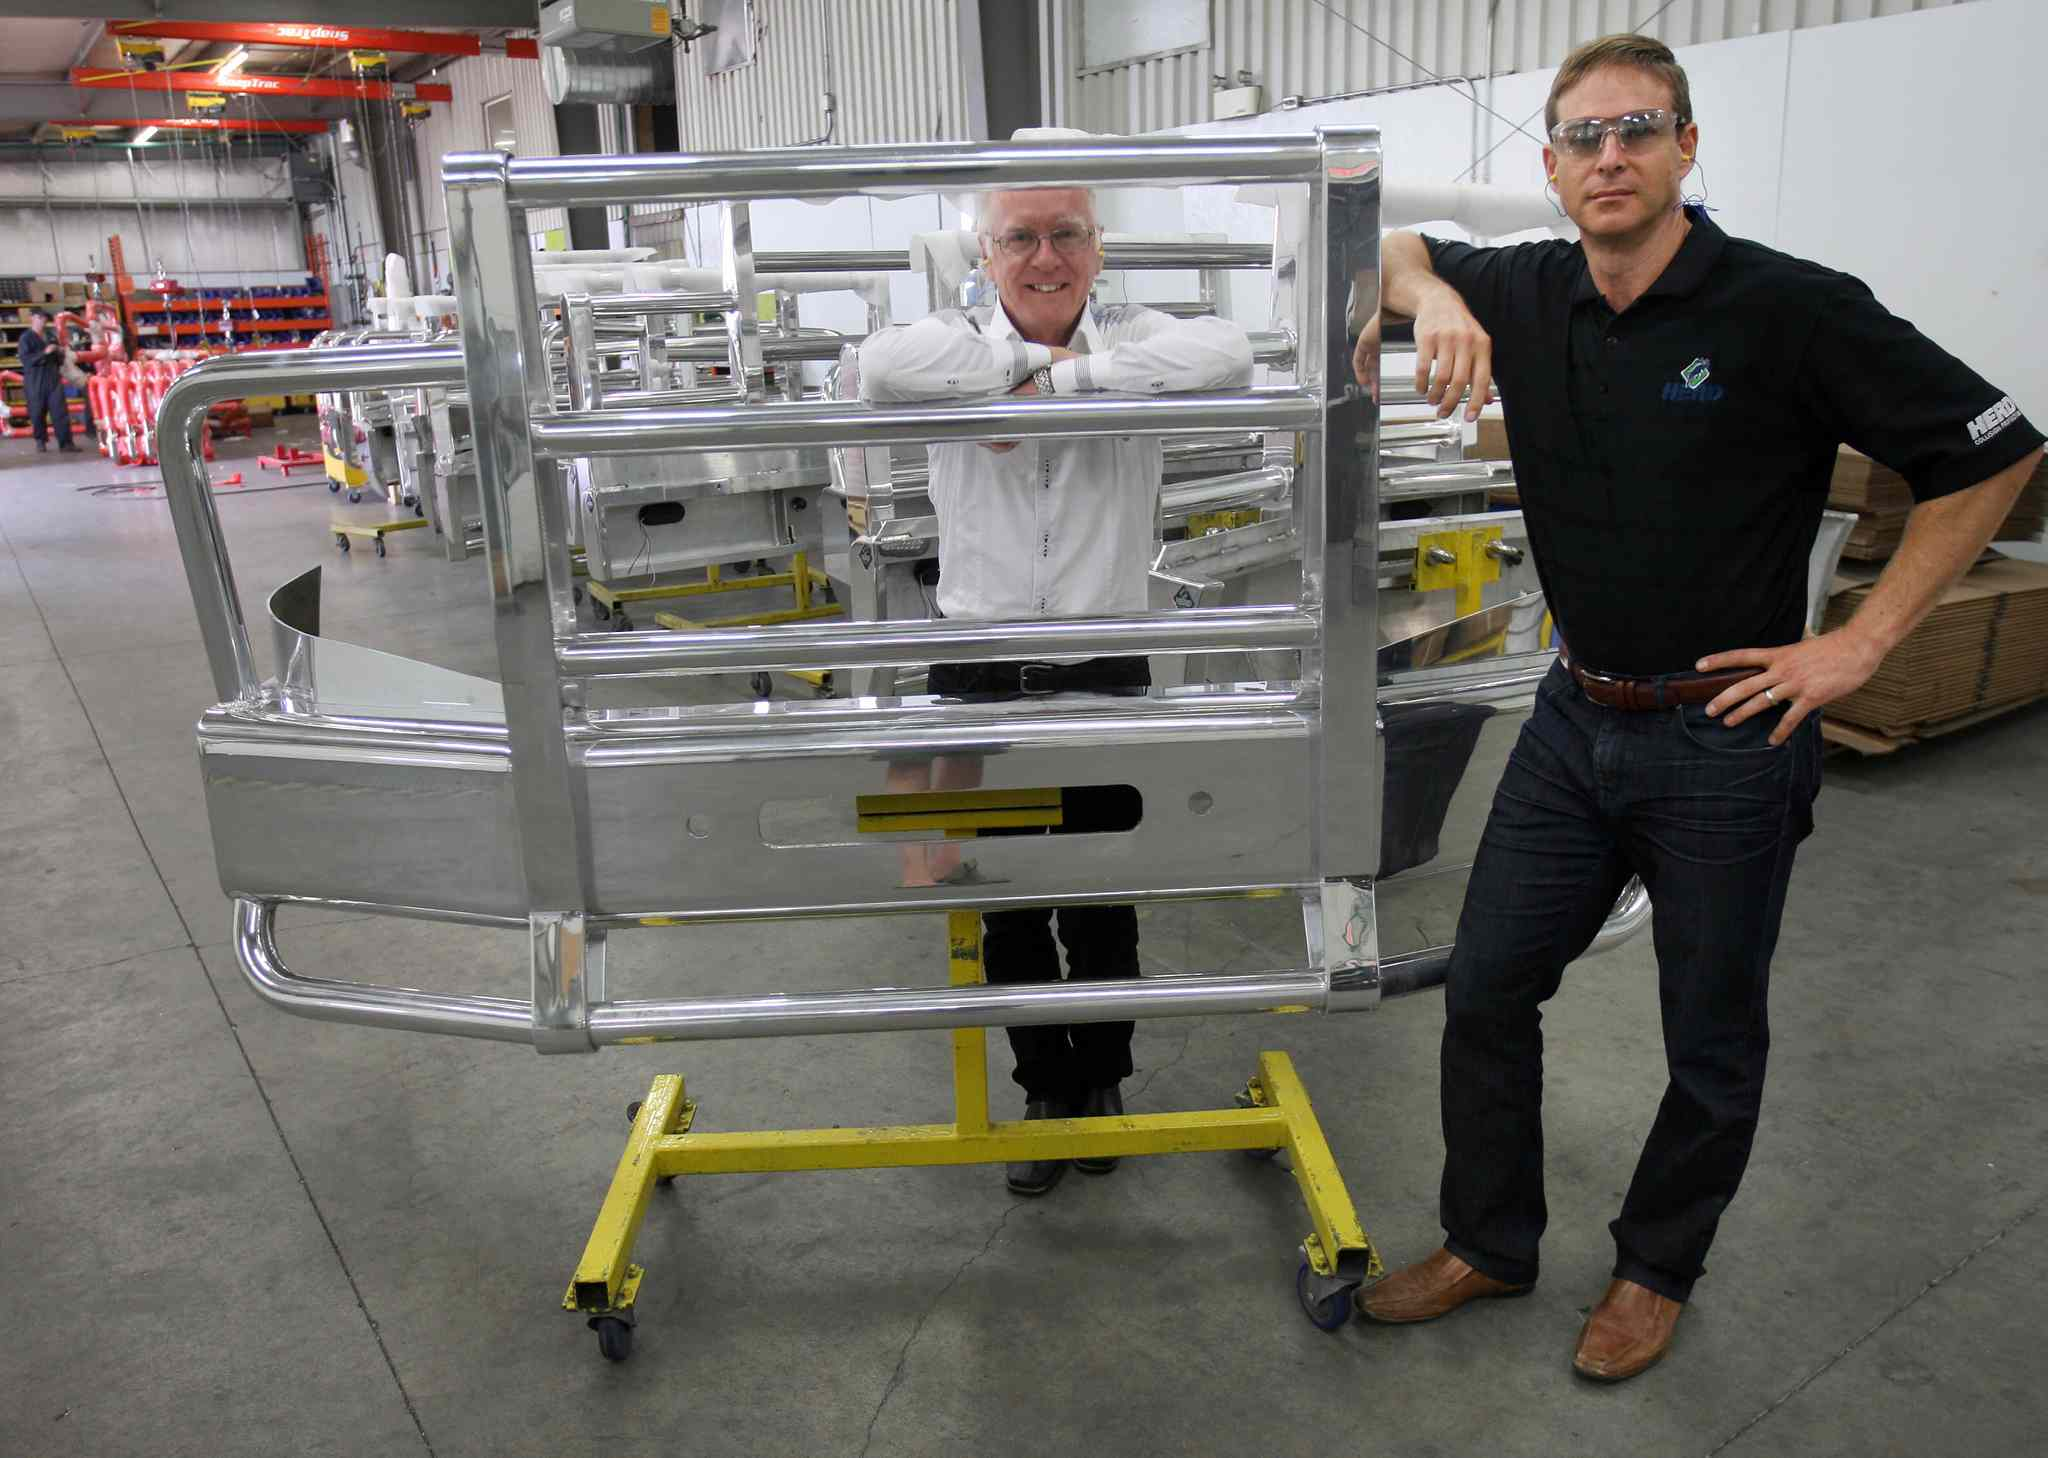 Herd north america inc is the largest manufacturer of grill and bumper guards for large